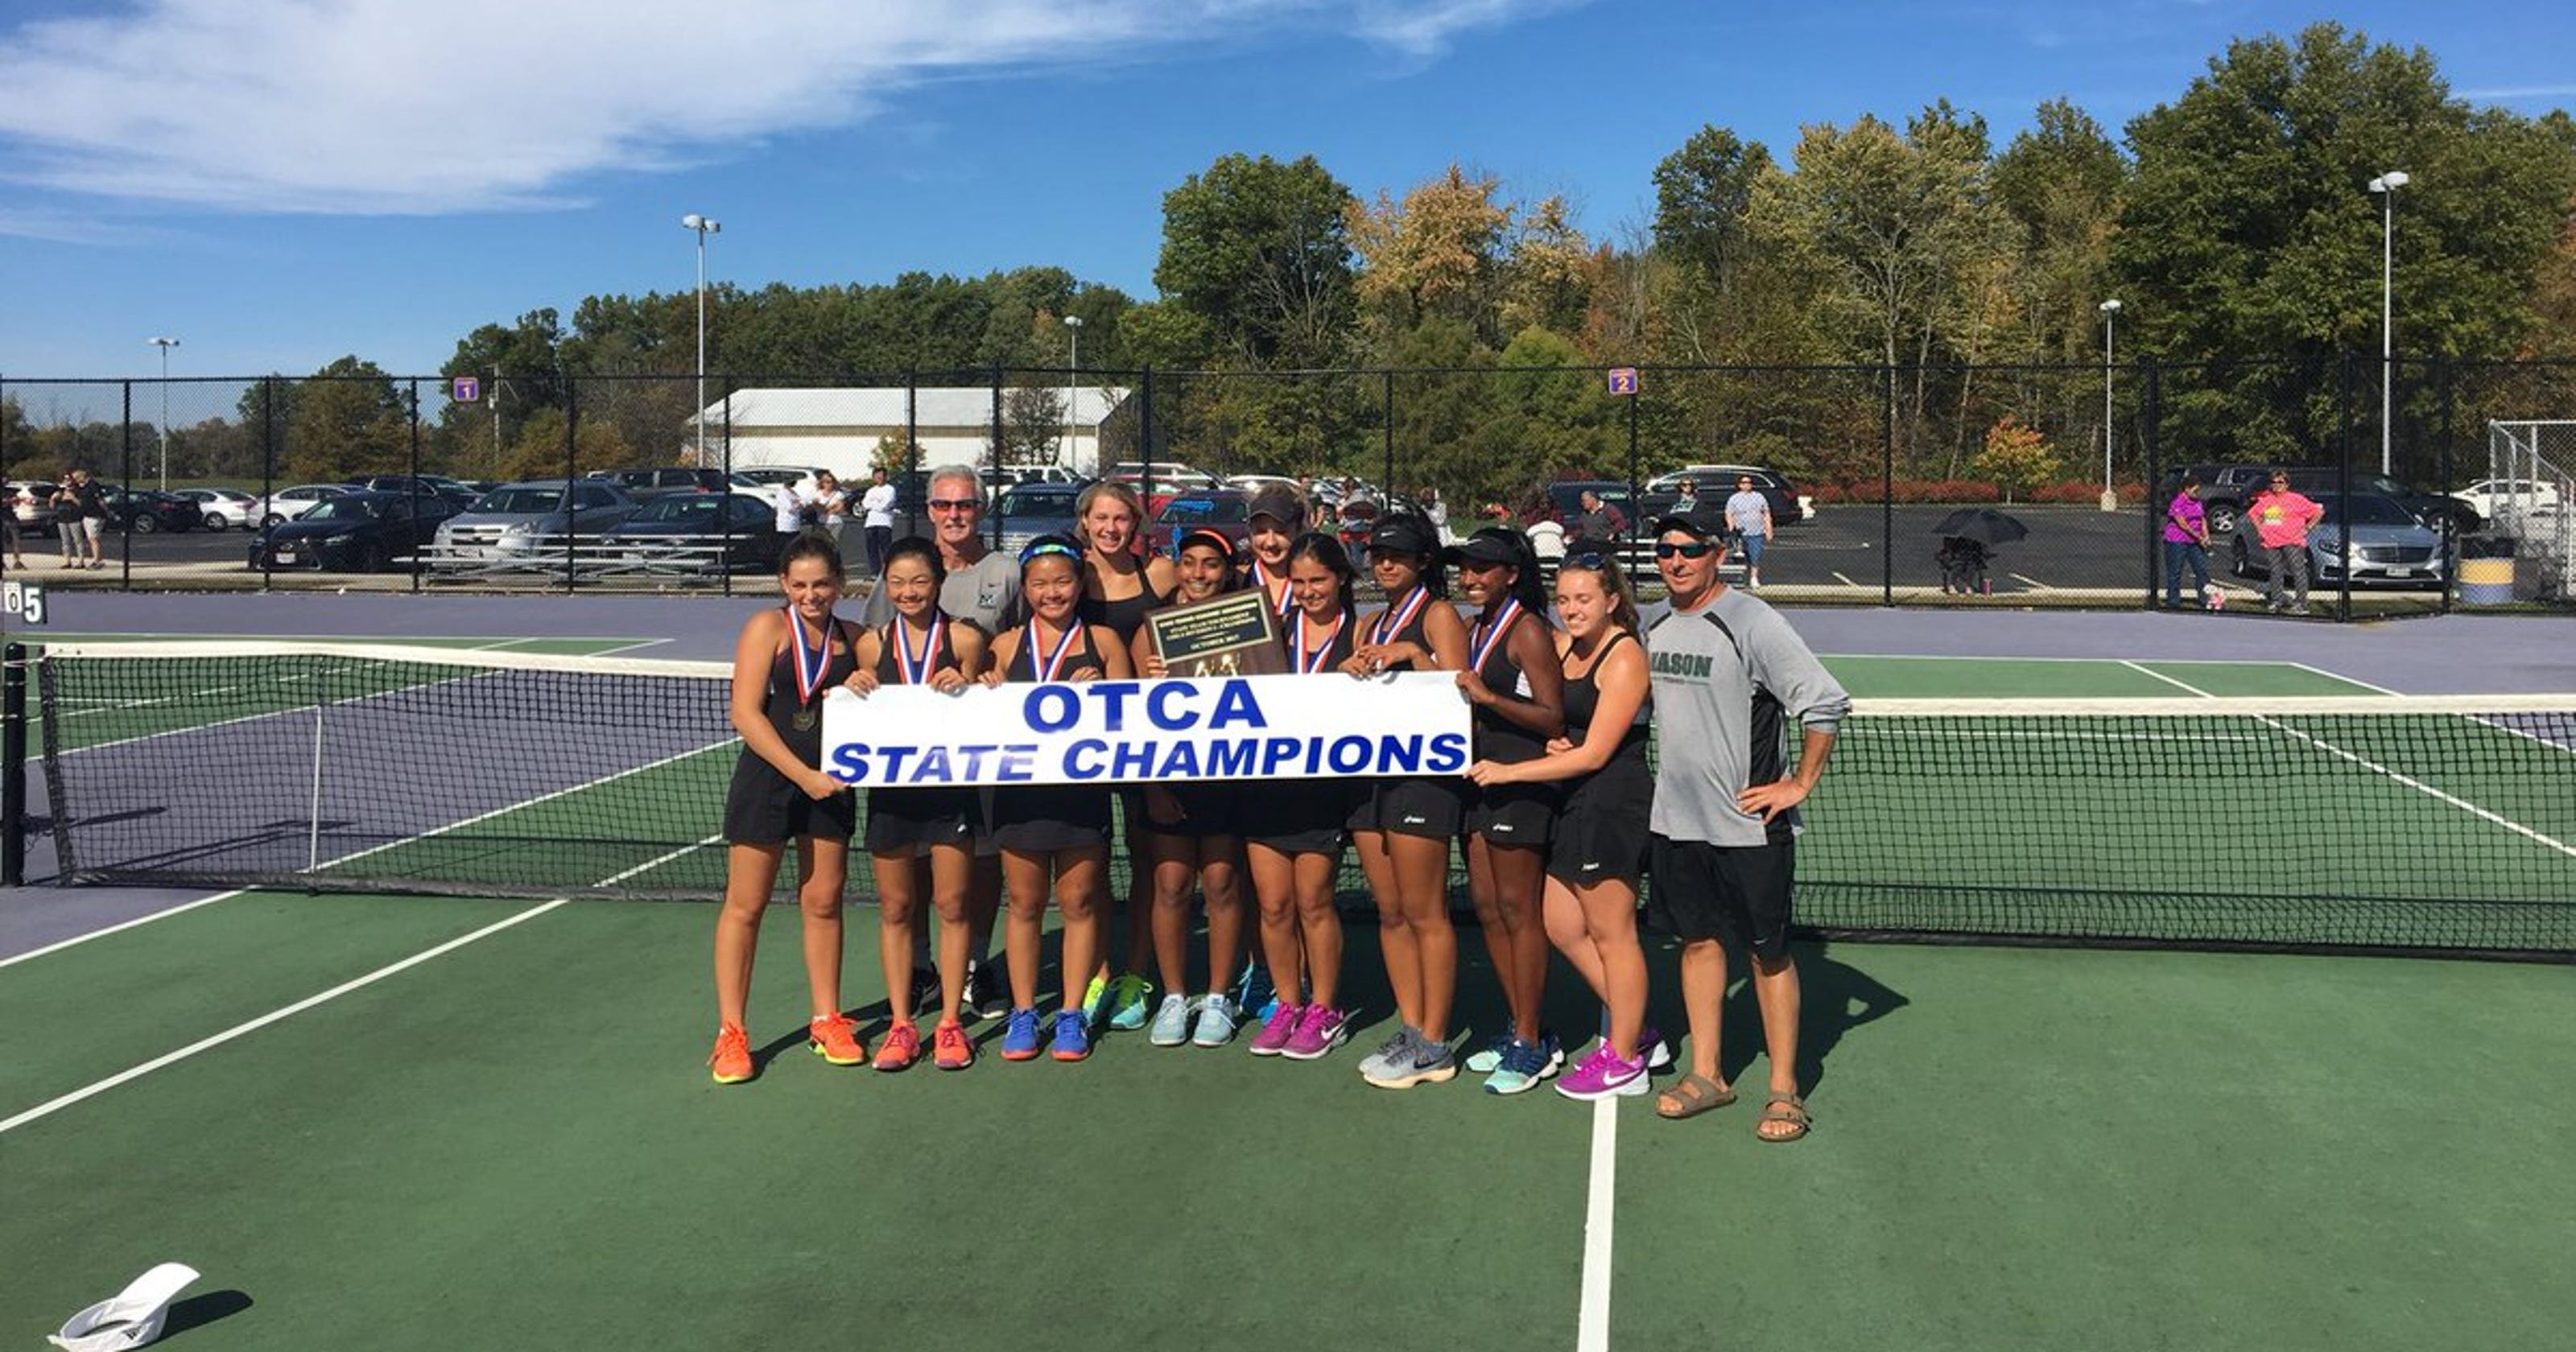 013de54a4c9a4 The top team in Ohio Division I girls tennis is Mason